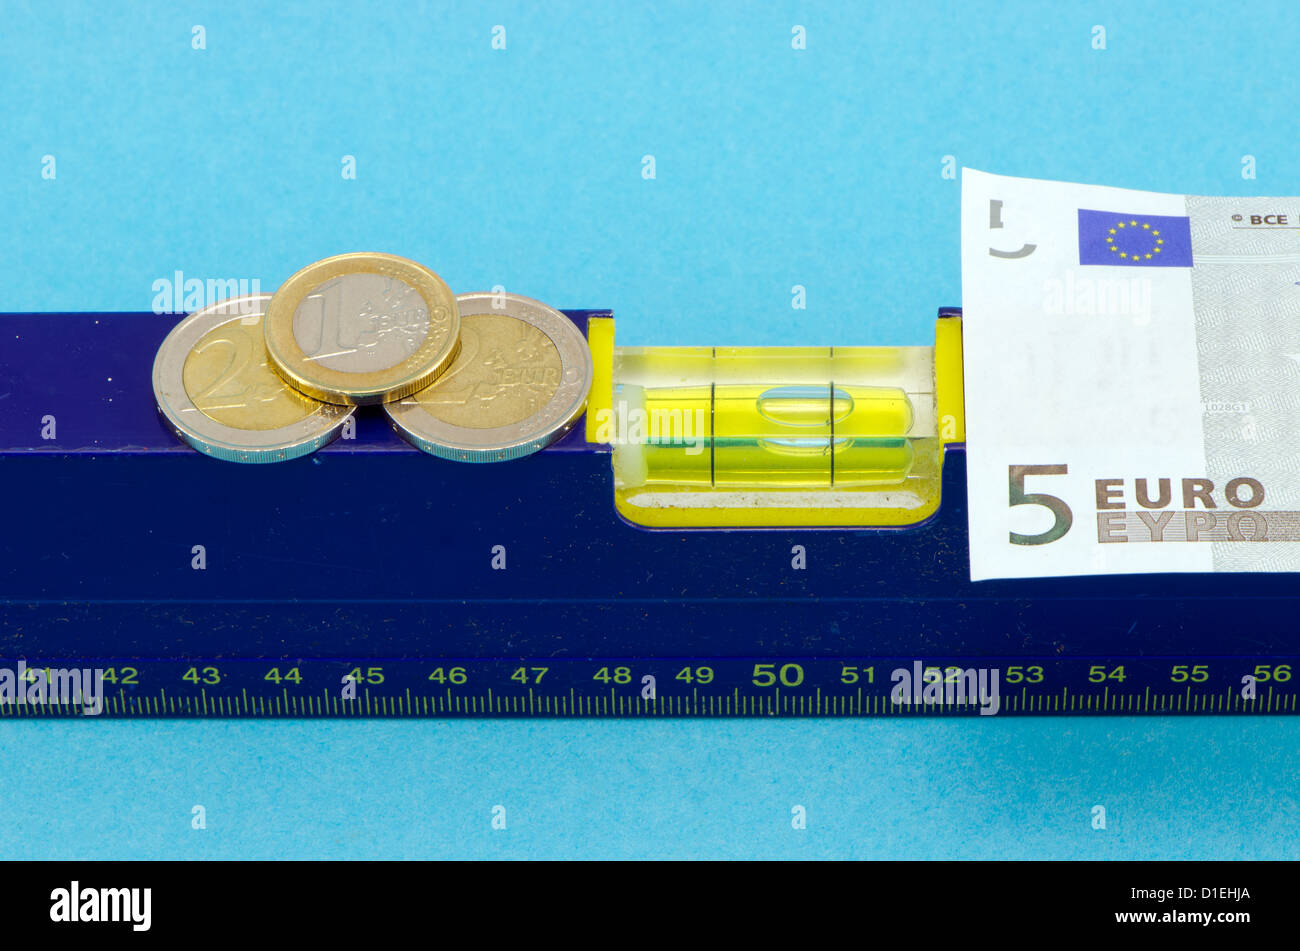 spirit level tool euro banknote and coins on blue background. - Stock Image